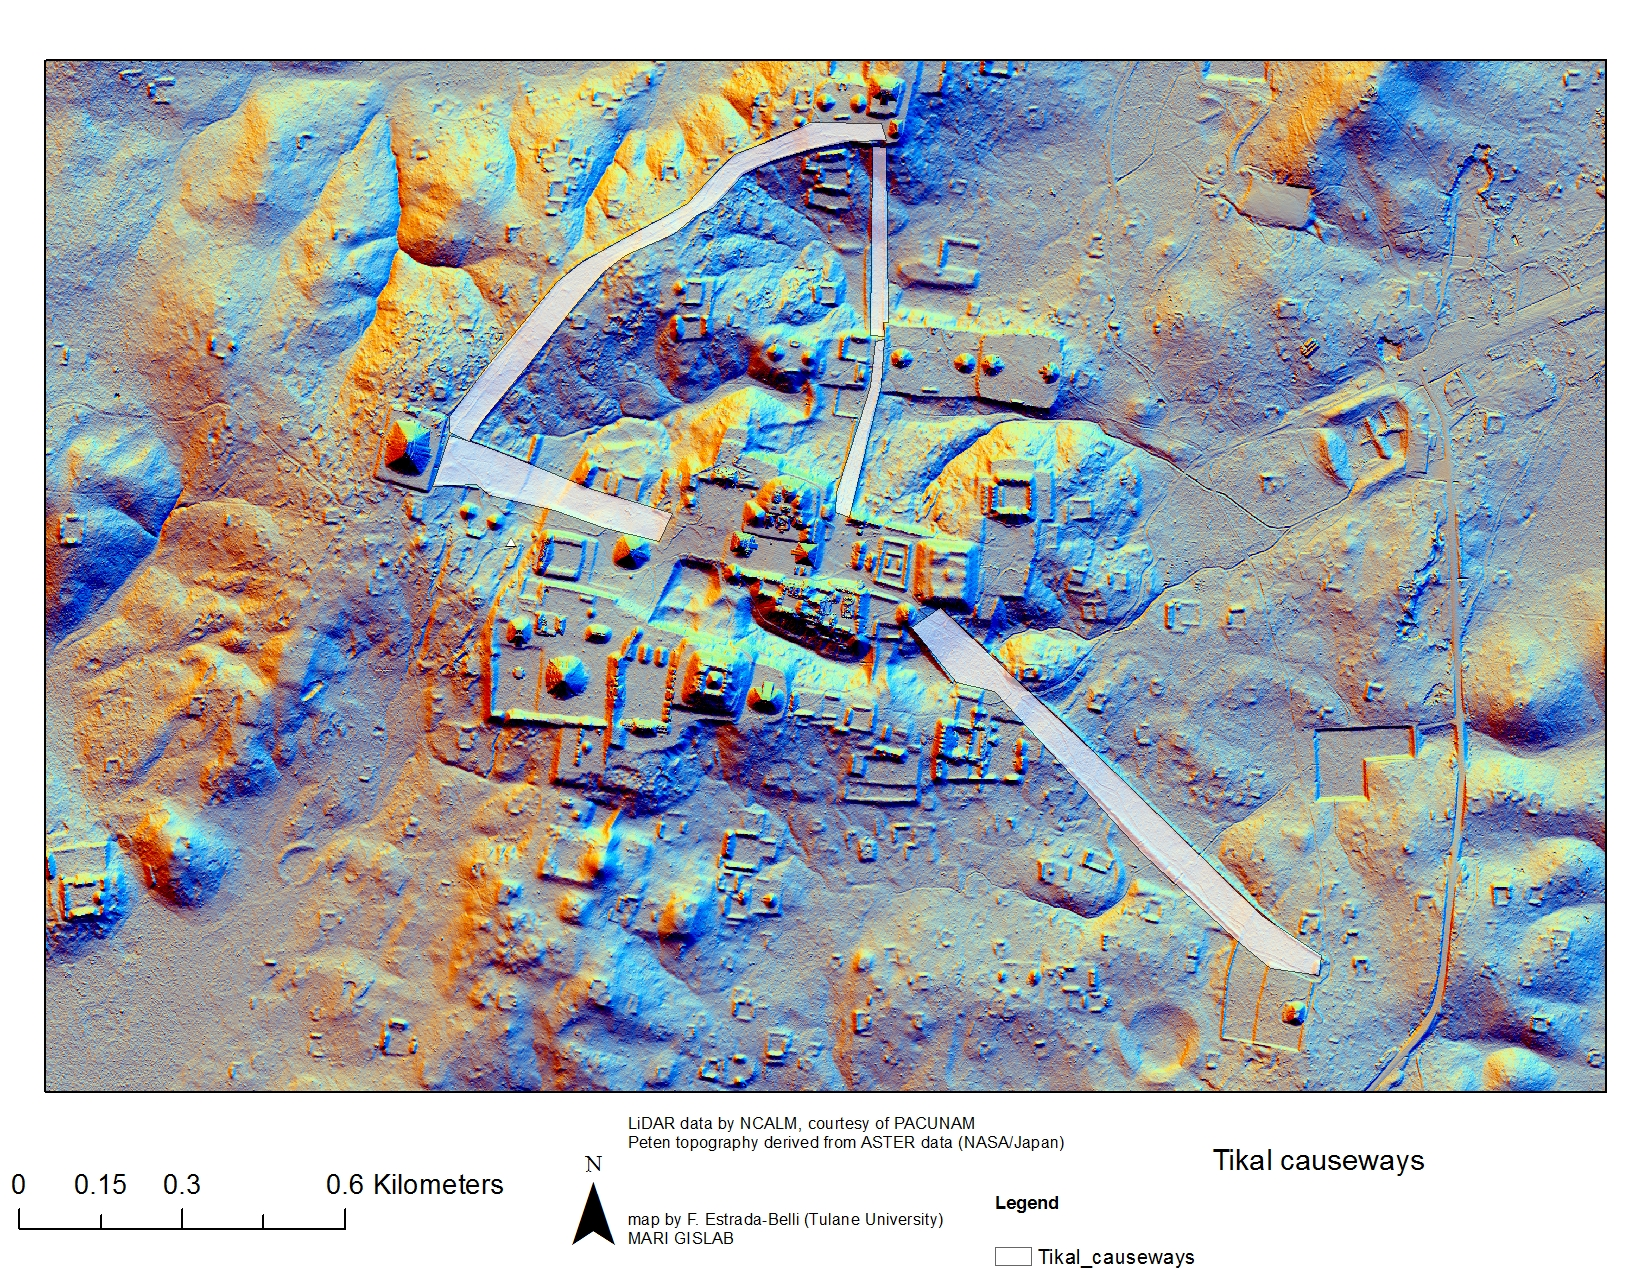 The Ruins of a Mive Ancient City Have Been Discovered in ... on mali empire trade route map, triangular trade route map, anasazi trade route map, roman trade route map, mongol trade route map, olmec trade route map, north american trade route map, byzantine trade route map, huron trade route map, silk road trade route map, greek trade route map, iroquois trade route map, egypt trade route map, incense trade route map, ghana trade route map, egyptian trade route map, south american trade route map, mesoamerican trade route on map, india trade route map, african trade route map,